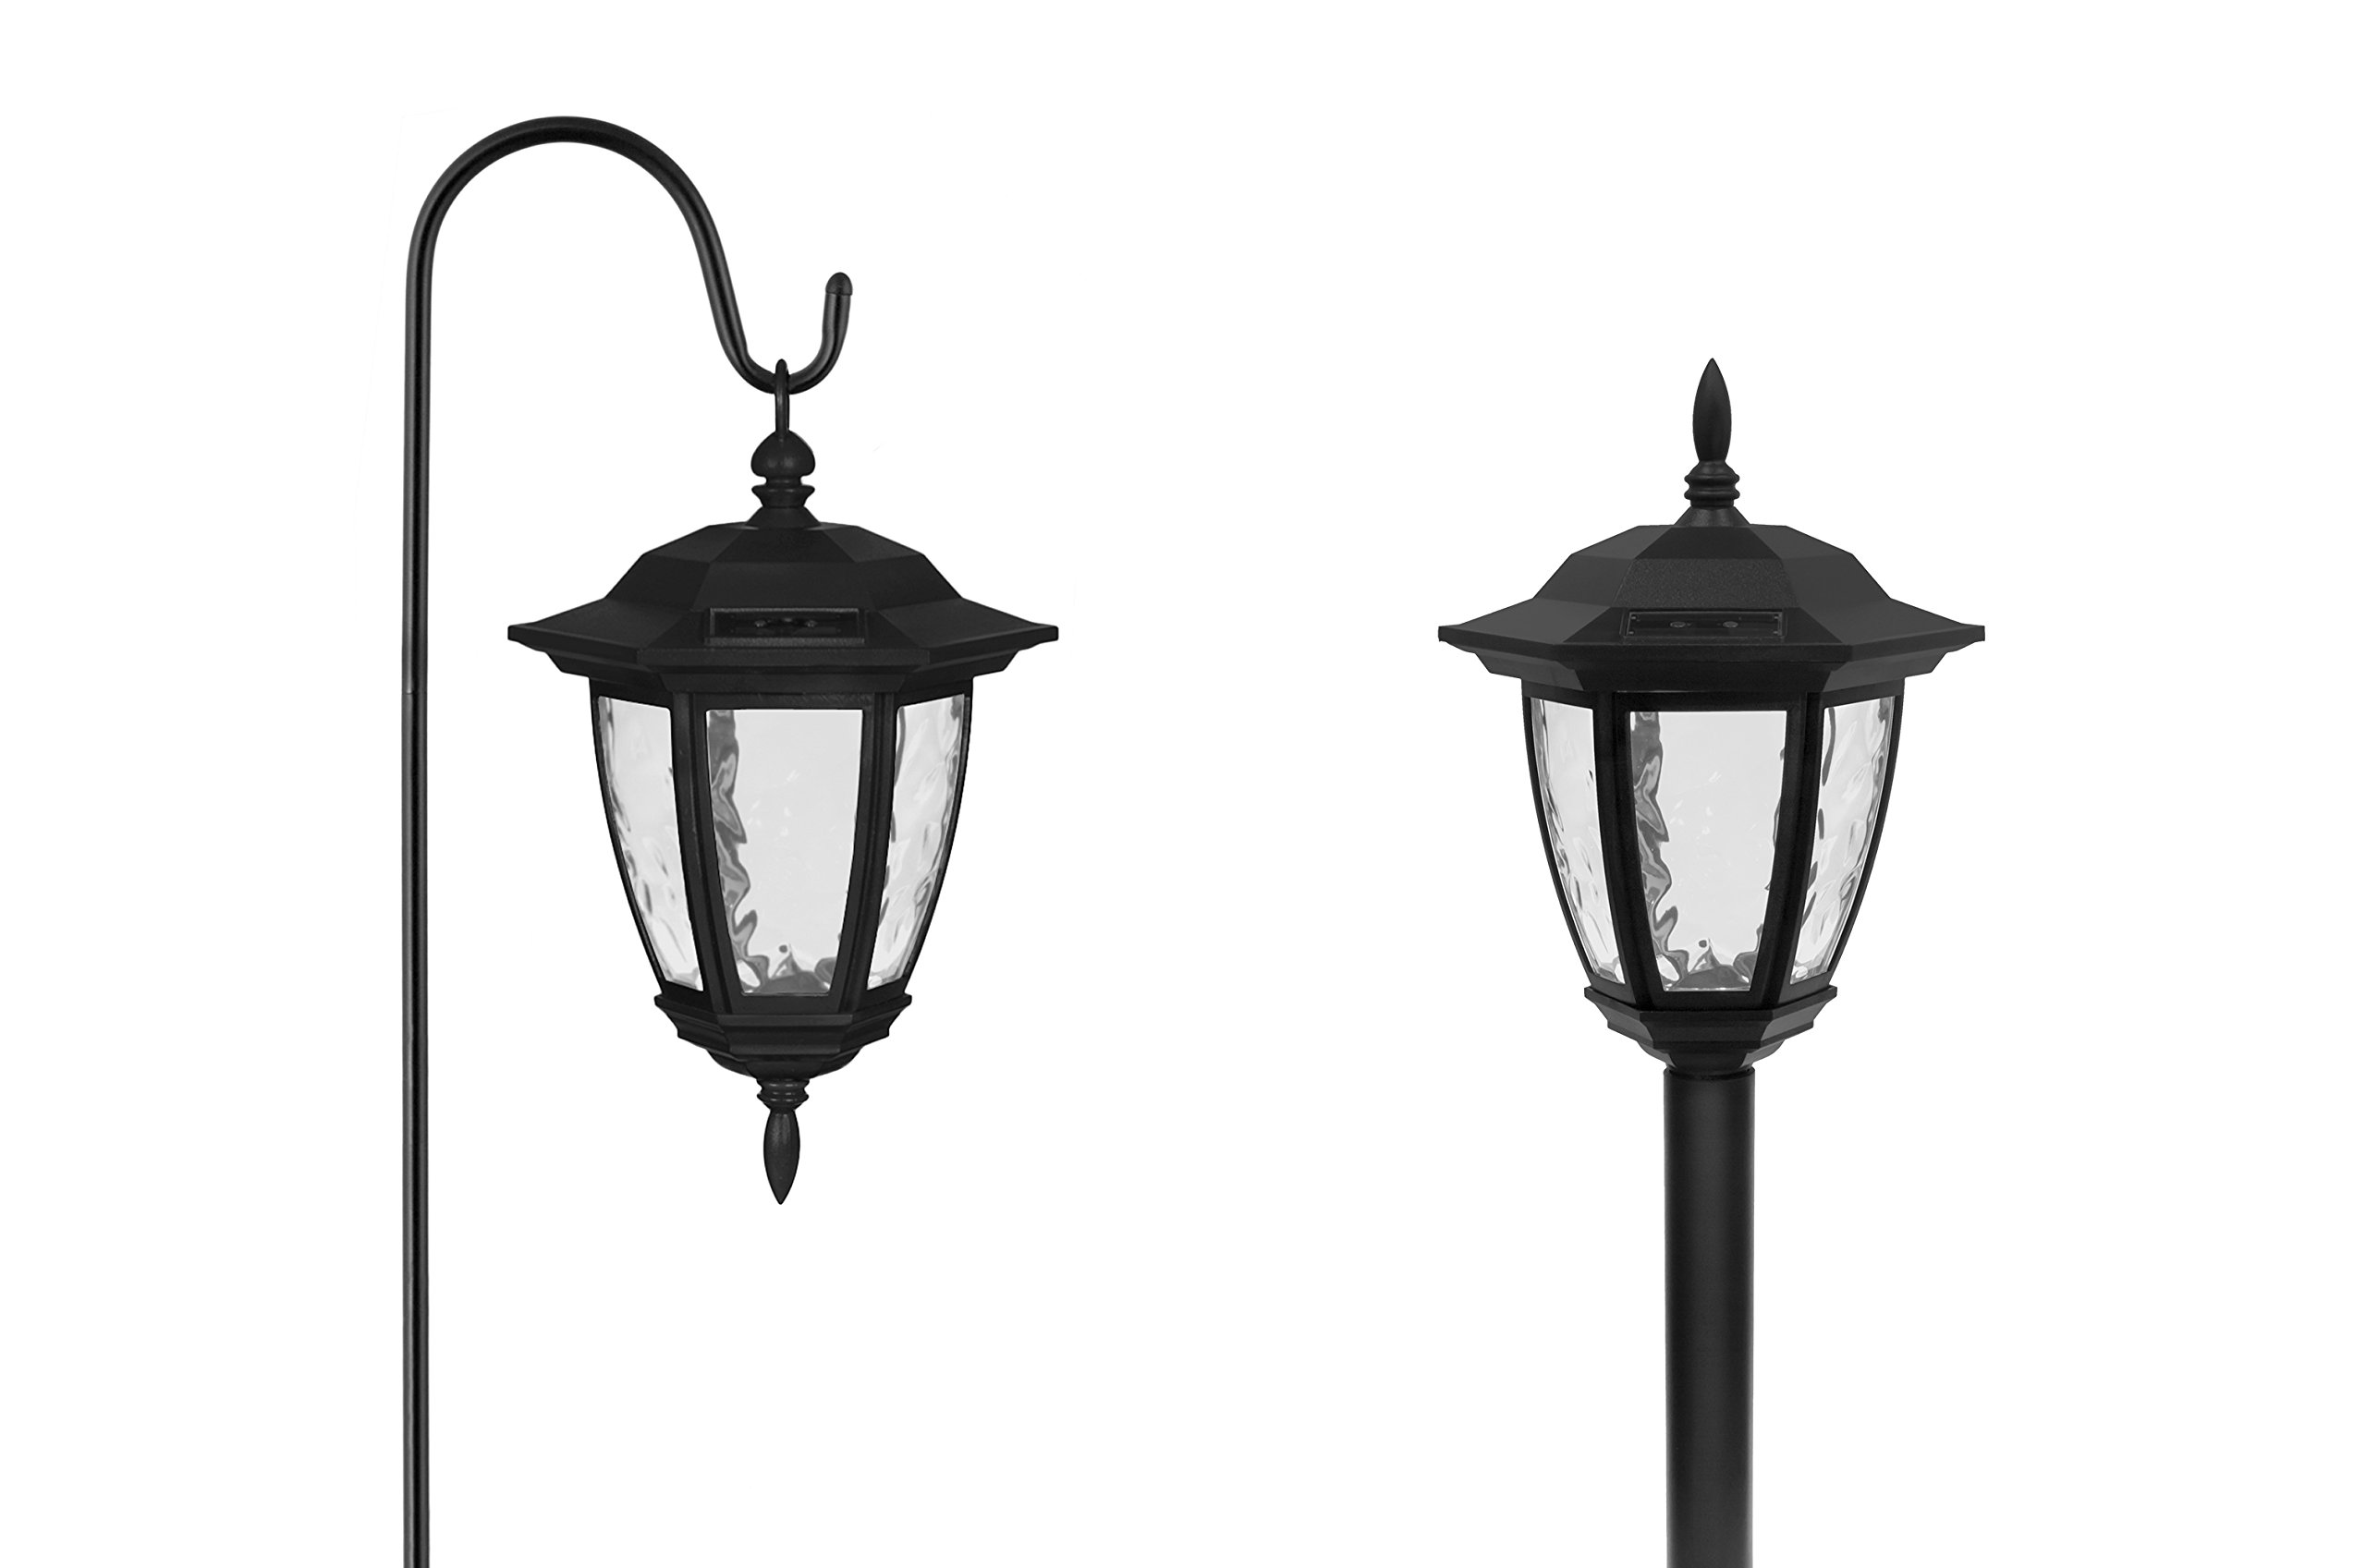 ezsolar Dual Use Classic Coach Light (Set of 2) Model #: CPM1a-R2- BK-2, Powered by SunPower Solar Panels, Pathway Lights, Outdoor Lighting, 1 AA Battery Included, 1 Year Warranty.